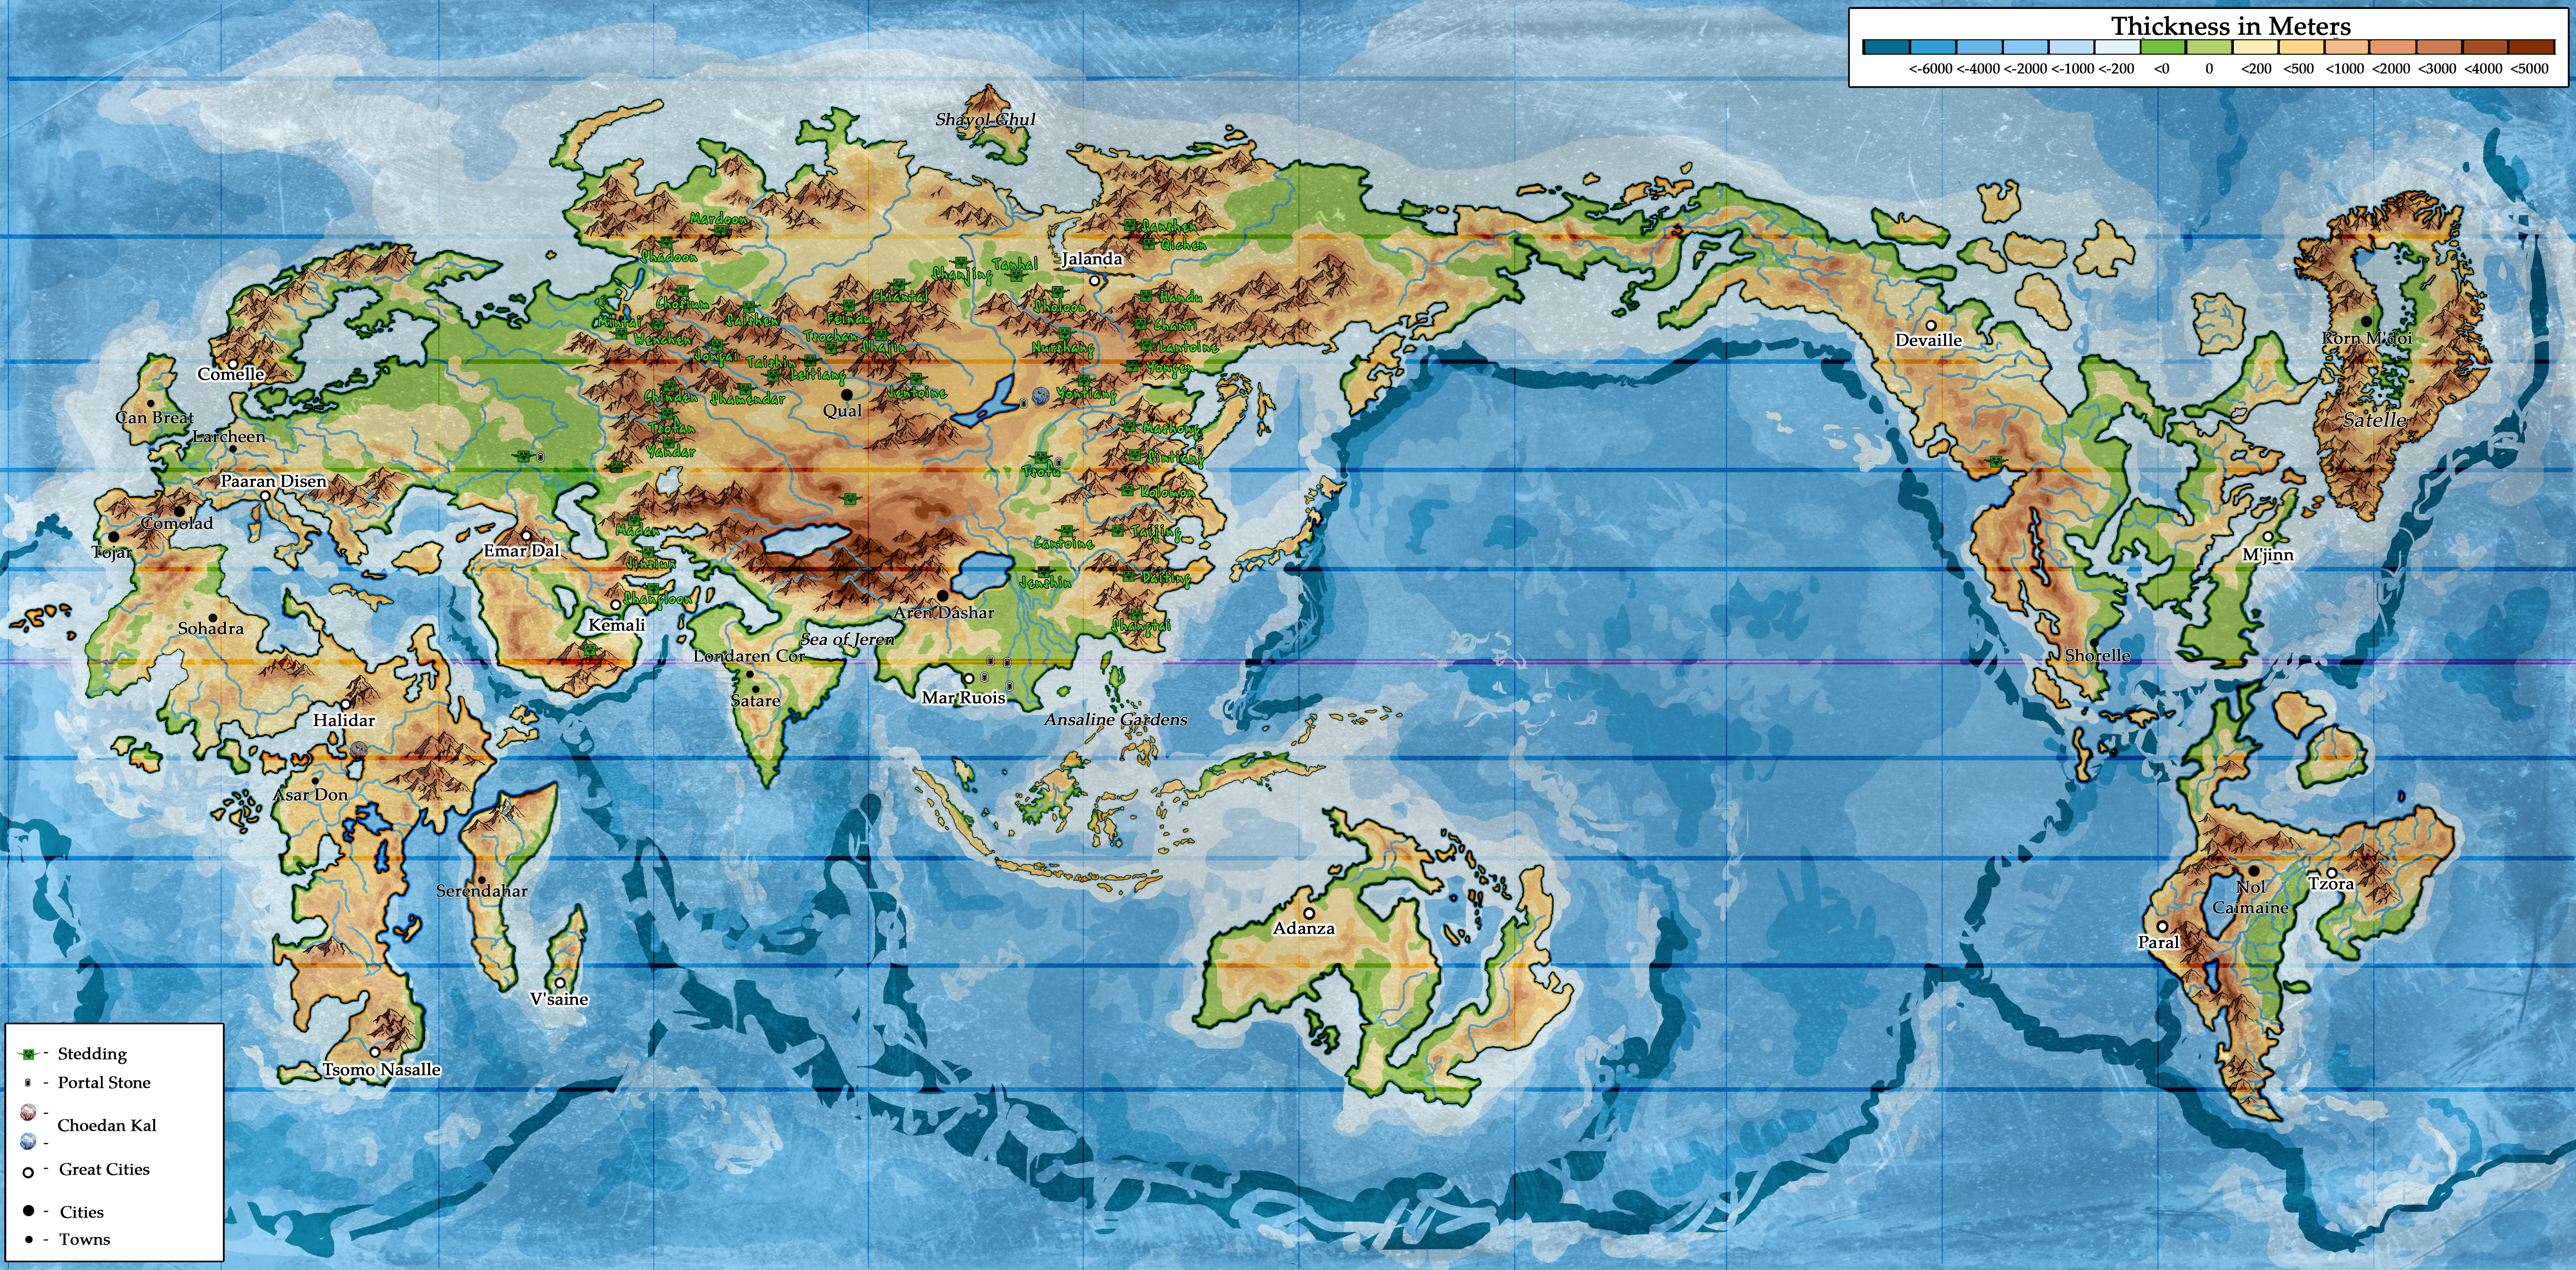 Wheel of Time world map: Second Age by KemonoKage on DeviantArt